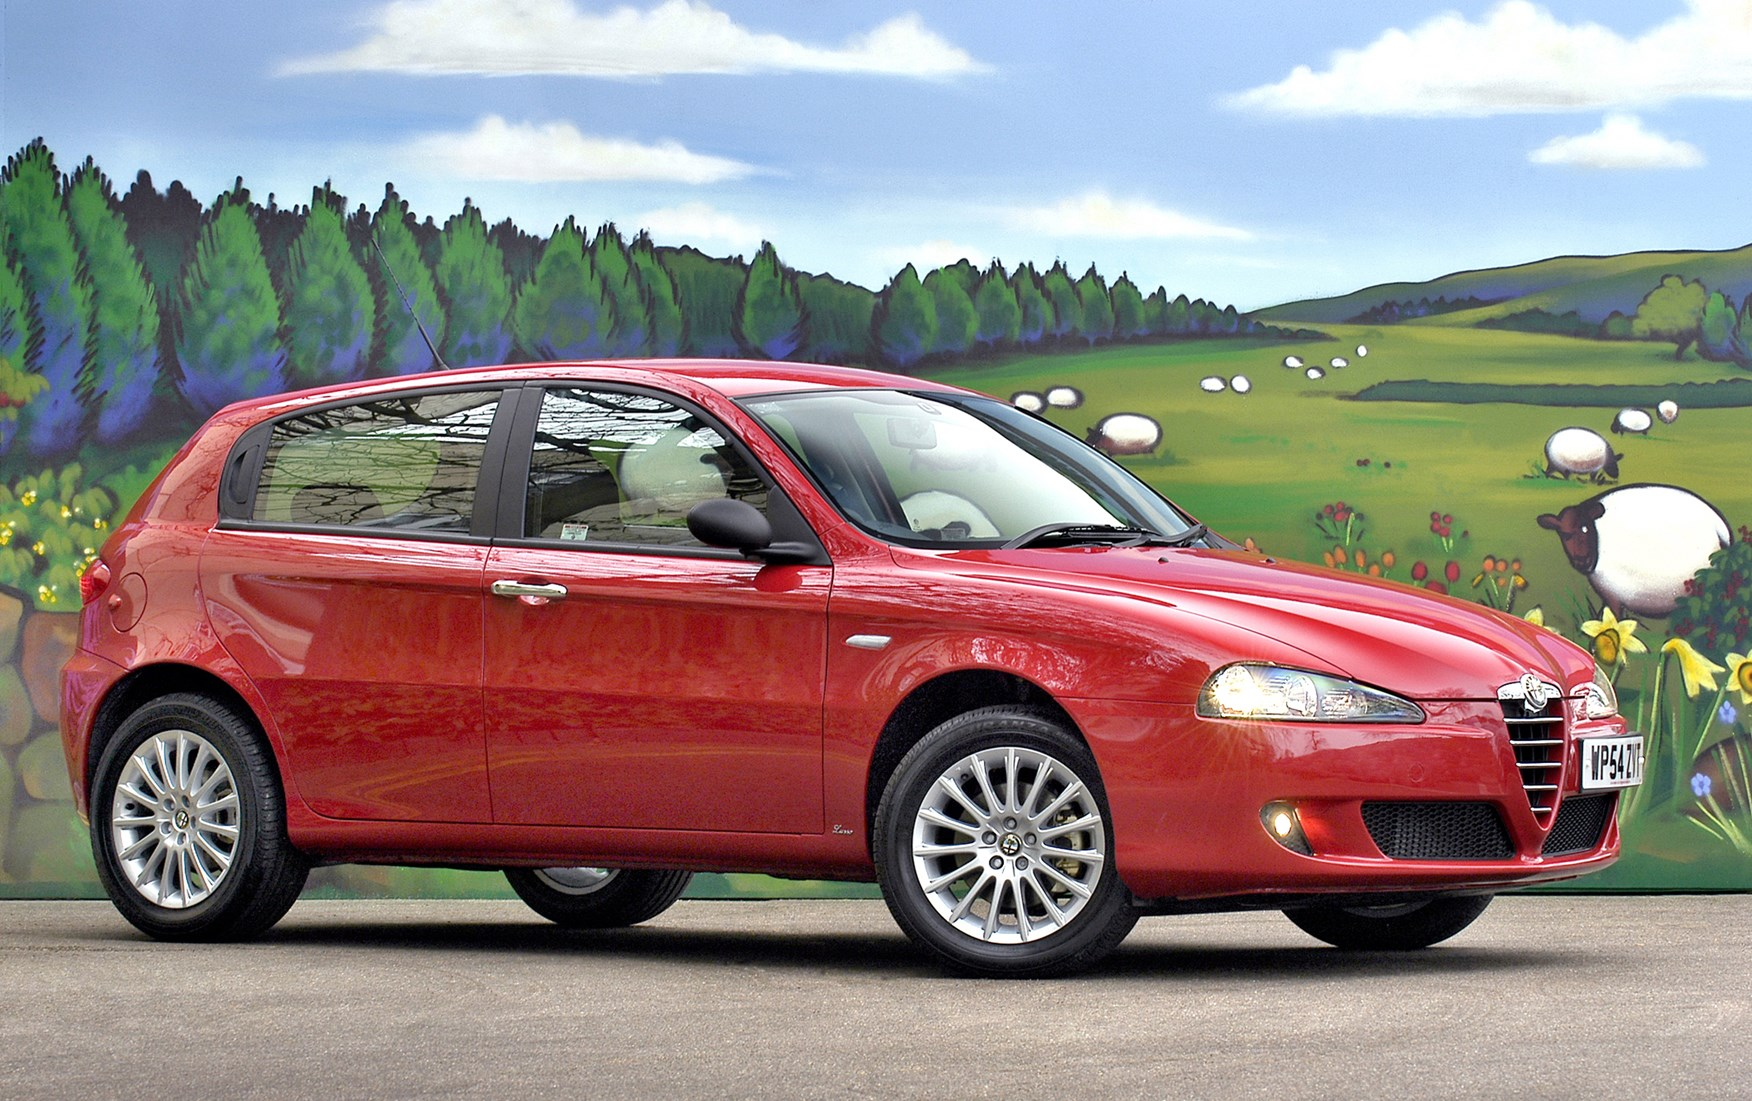 alfa romeo 147 hatchback review 2001 2009 parkers. Black Bedroom Furniture Sets. Home Design Ideas